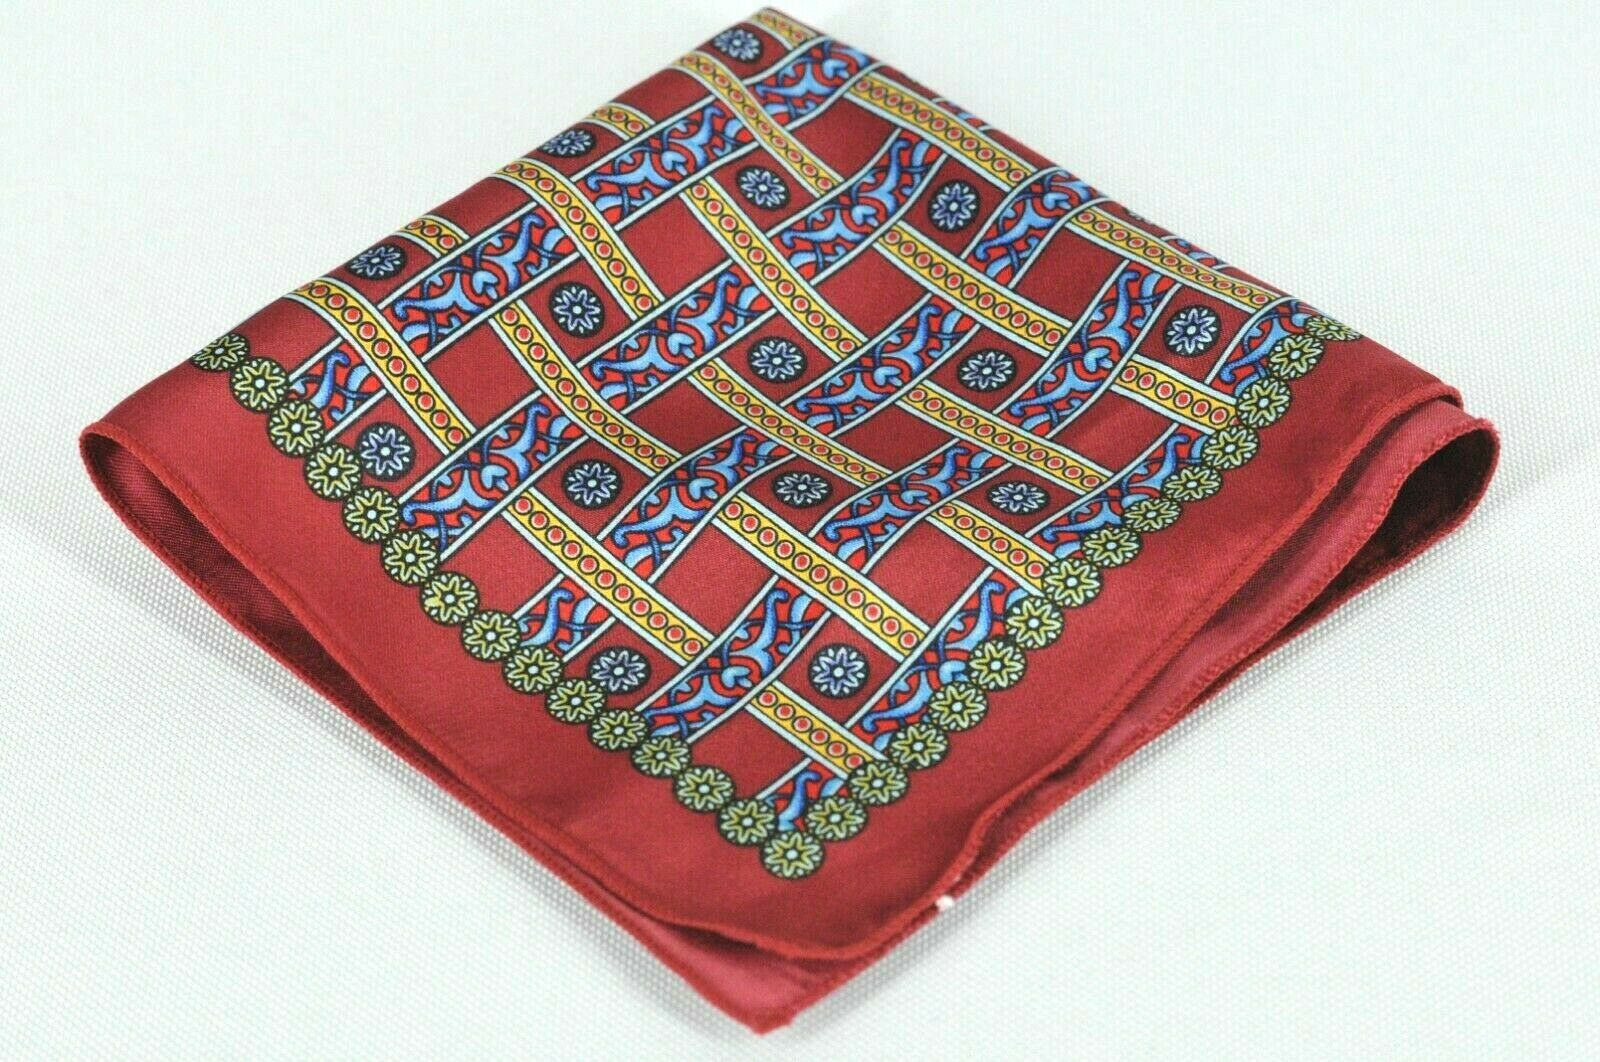 Lord R Colton Masterworks Pocket Square Vatican Red Silk - Retail New